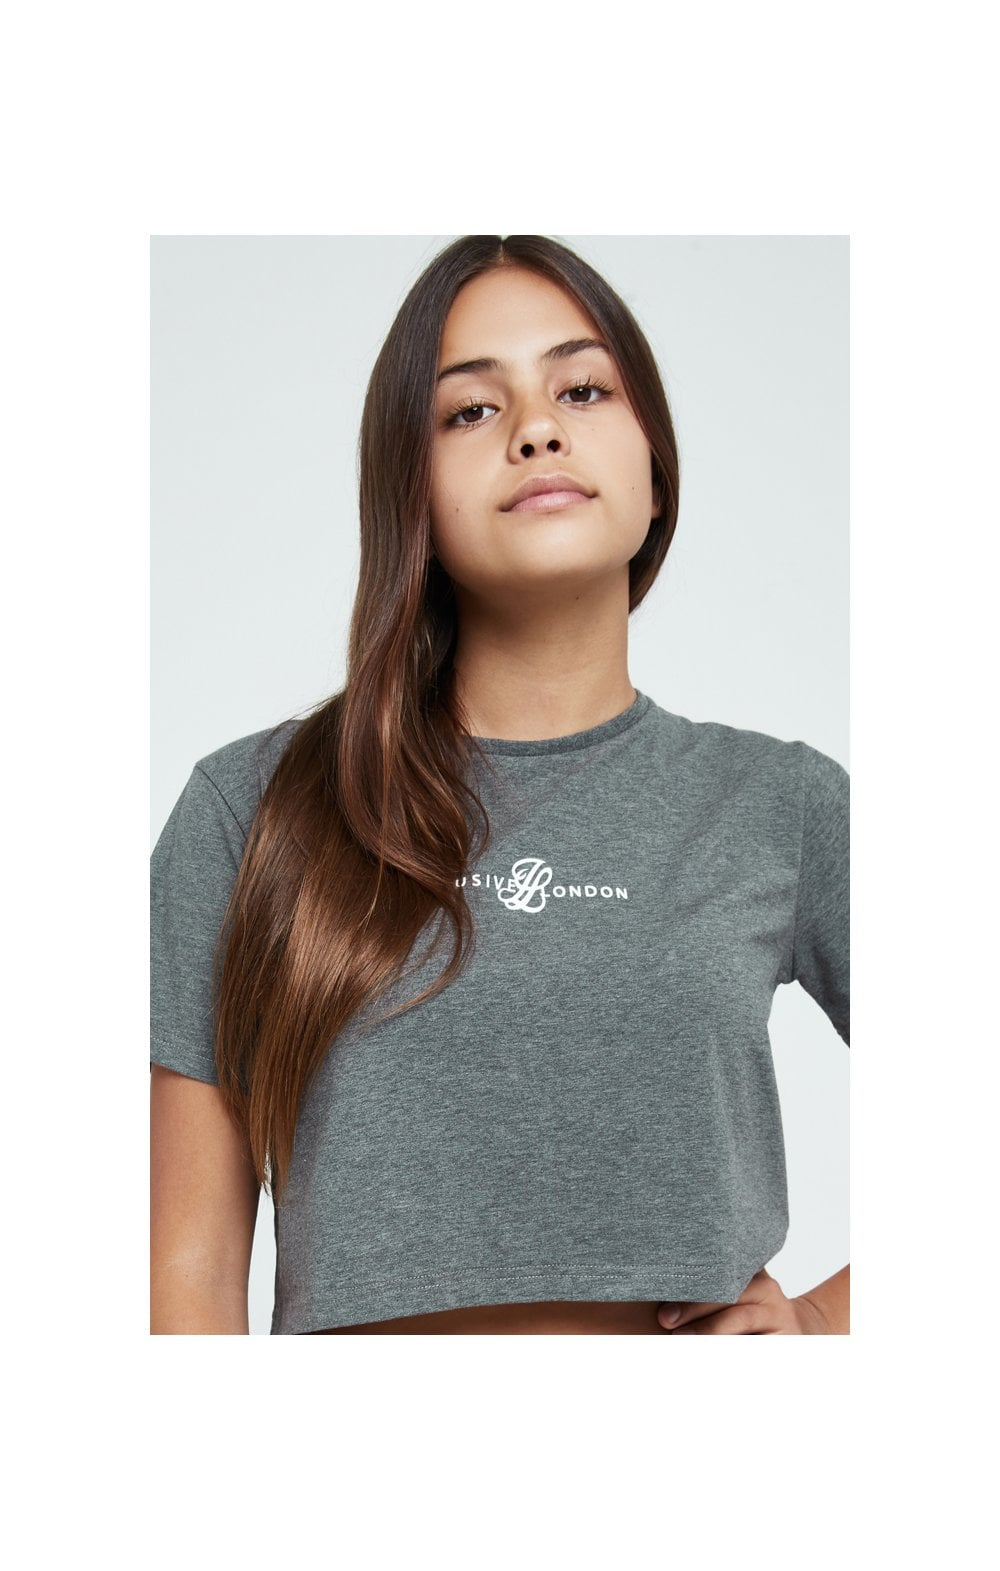 Illusive London Dual Crop Tee - Grey Marl